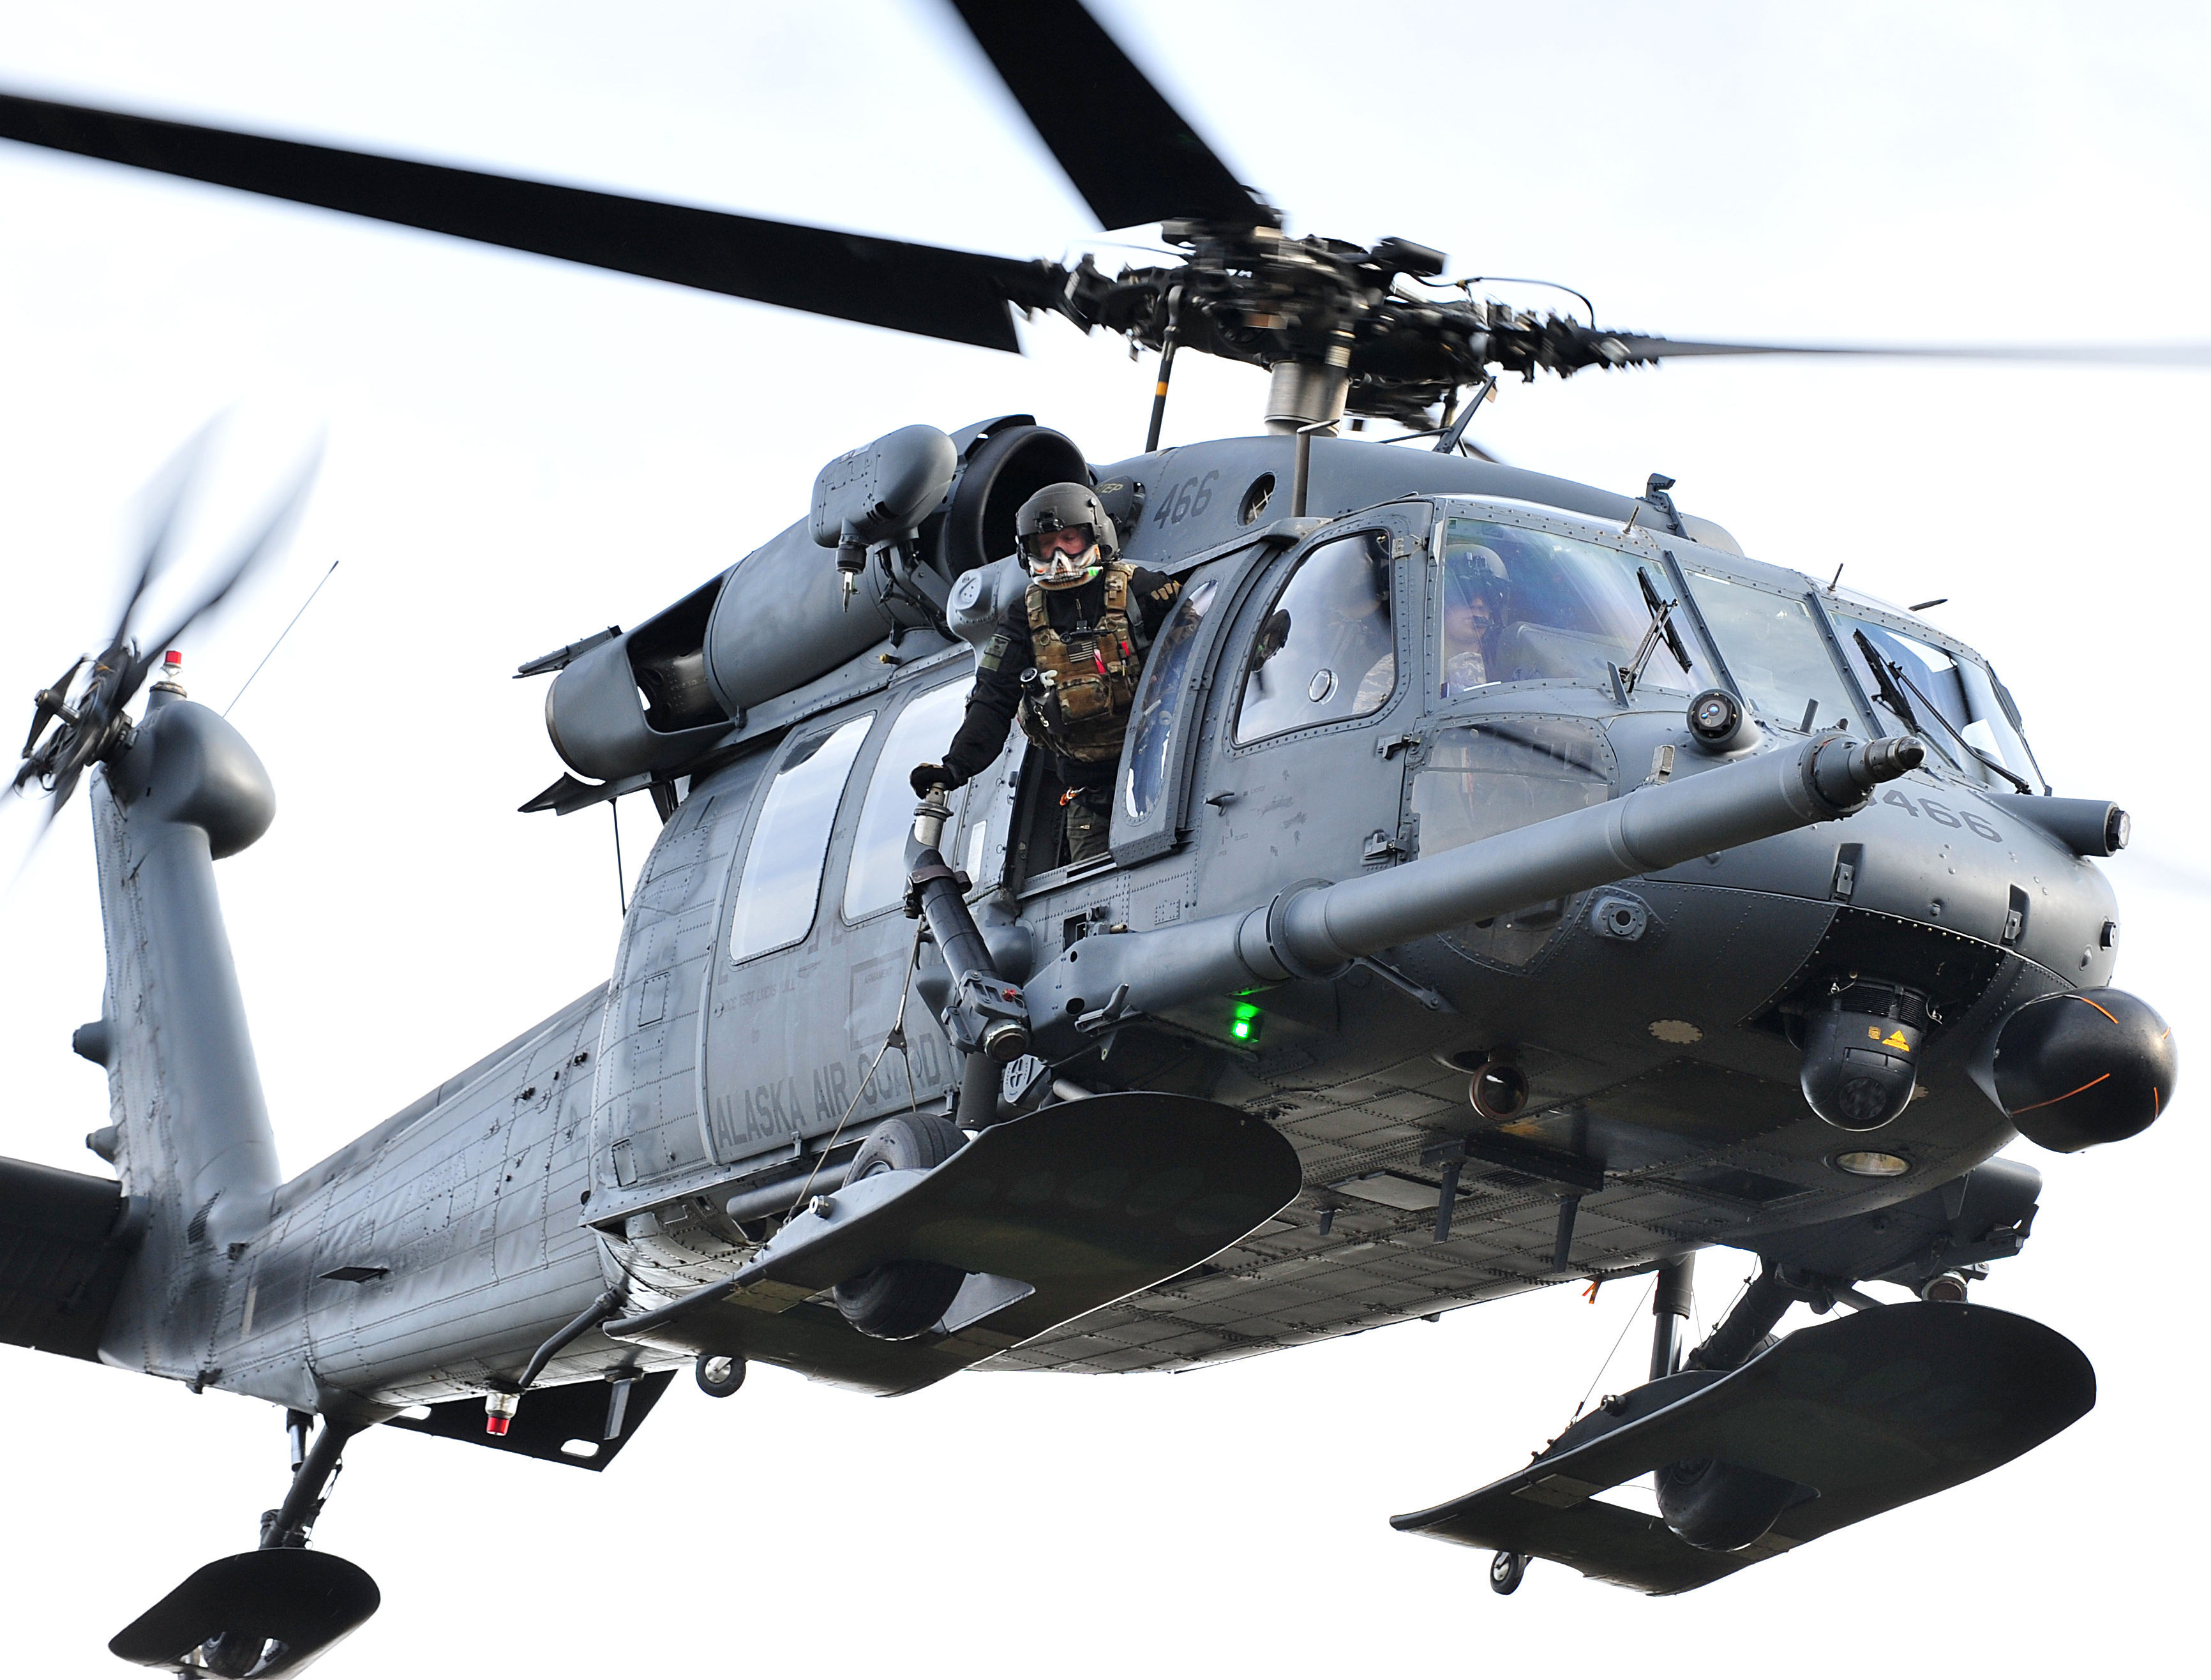 List of United States military helicopters | Military Wiki ...